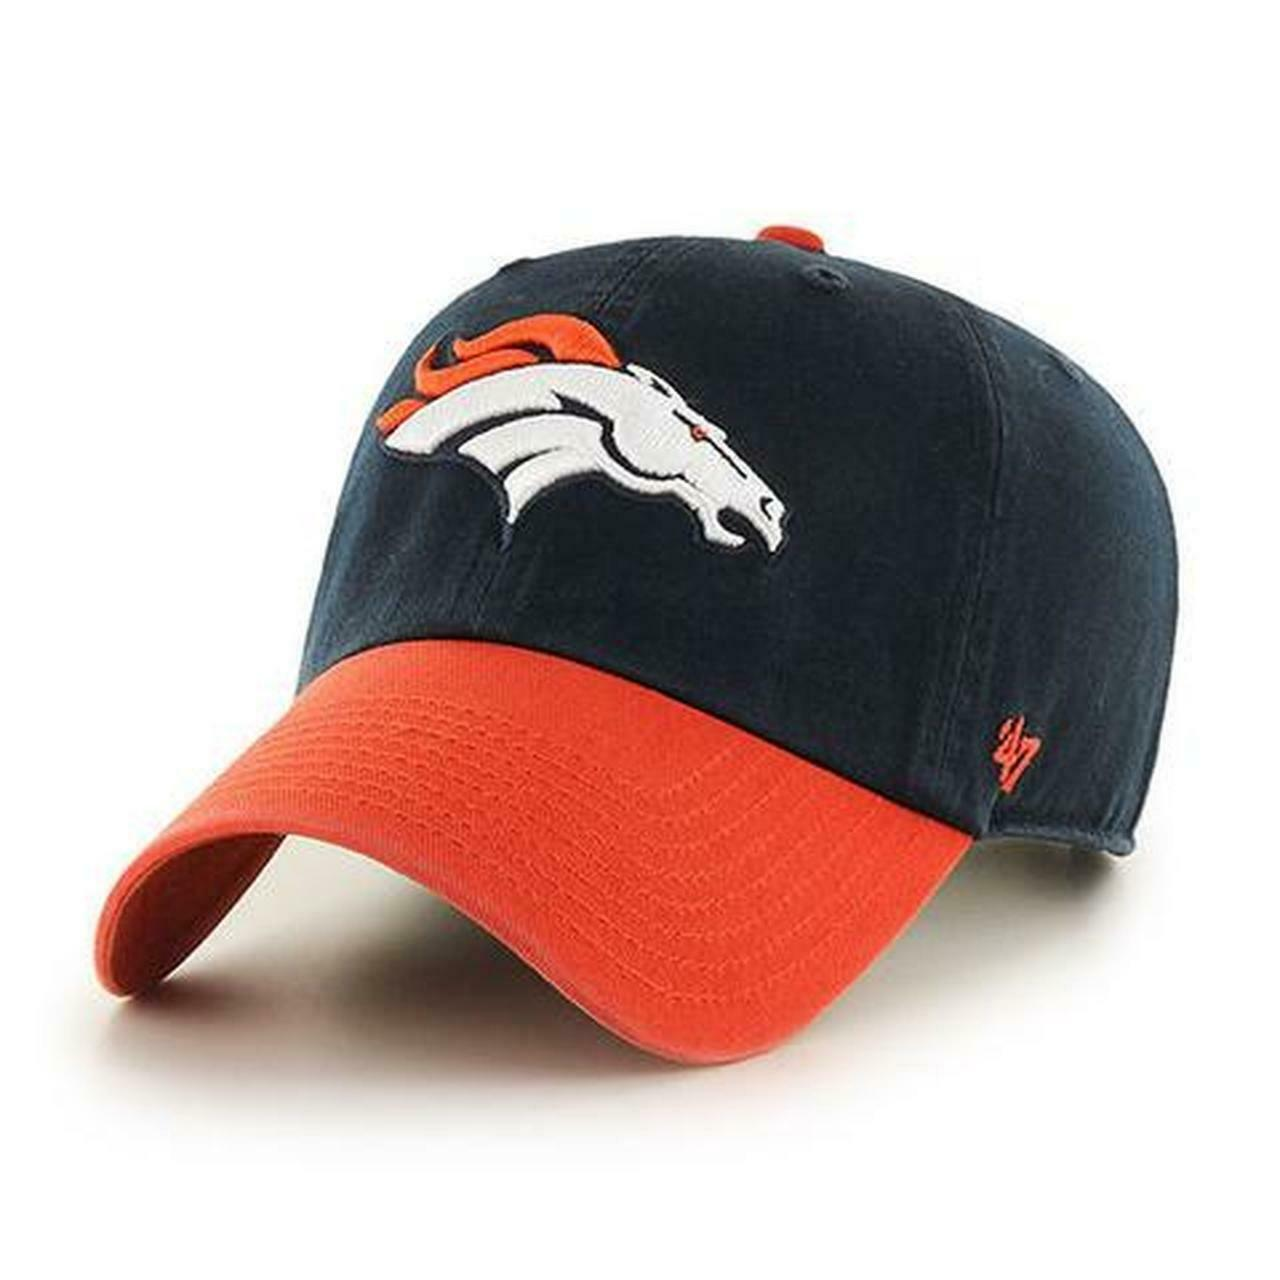 DENVER BRONCOS 47 BRAND TWO-TONE CLEAN UP CAP - $19.79